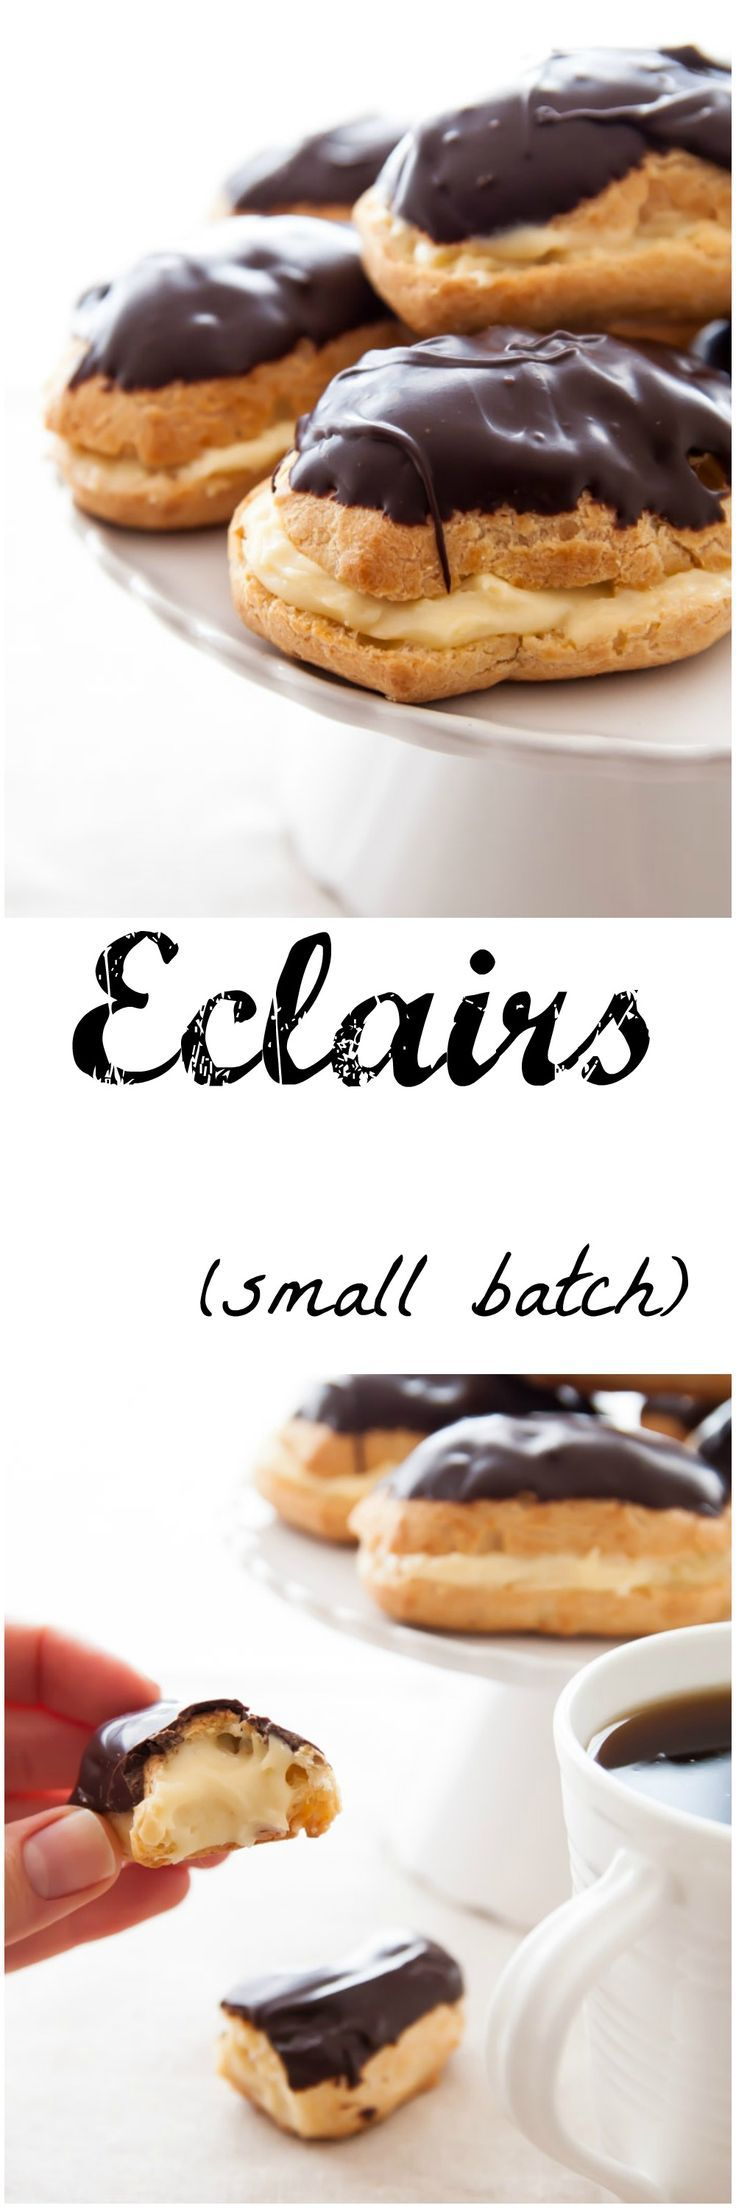 Eclairs made from scratch. Easier than you think, plus easy pastry cream recipe. Small batch recipe so quick to make!